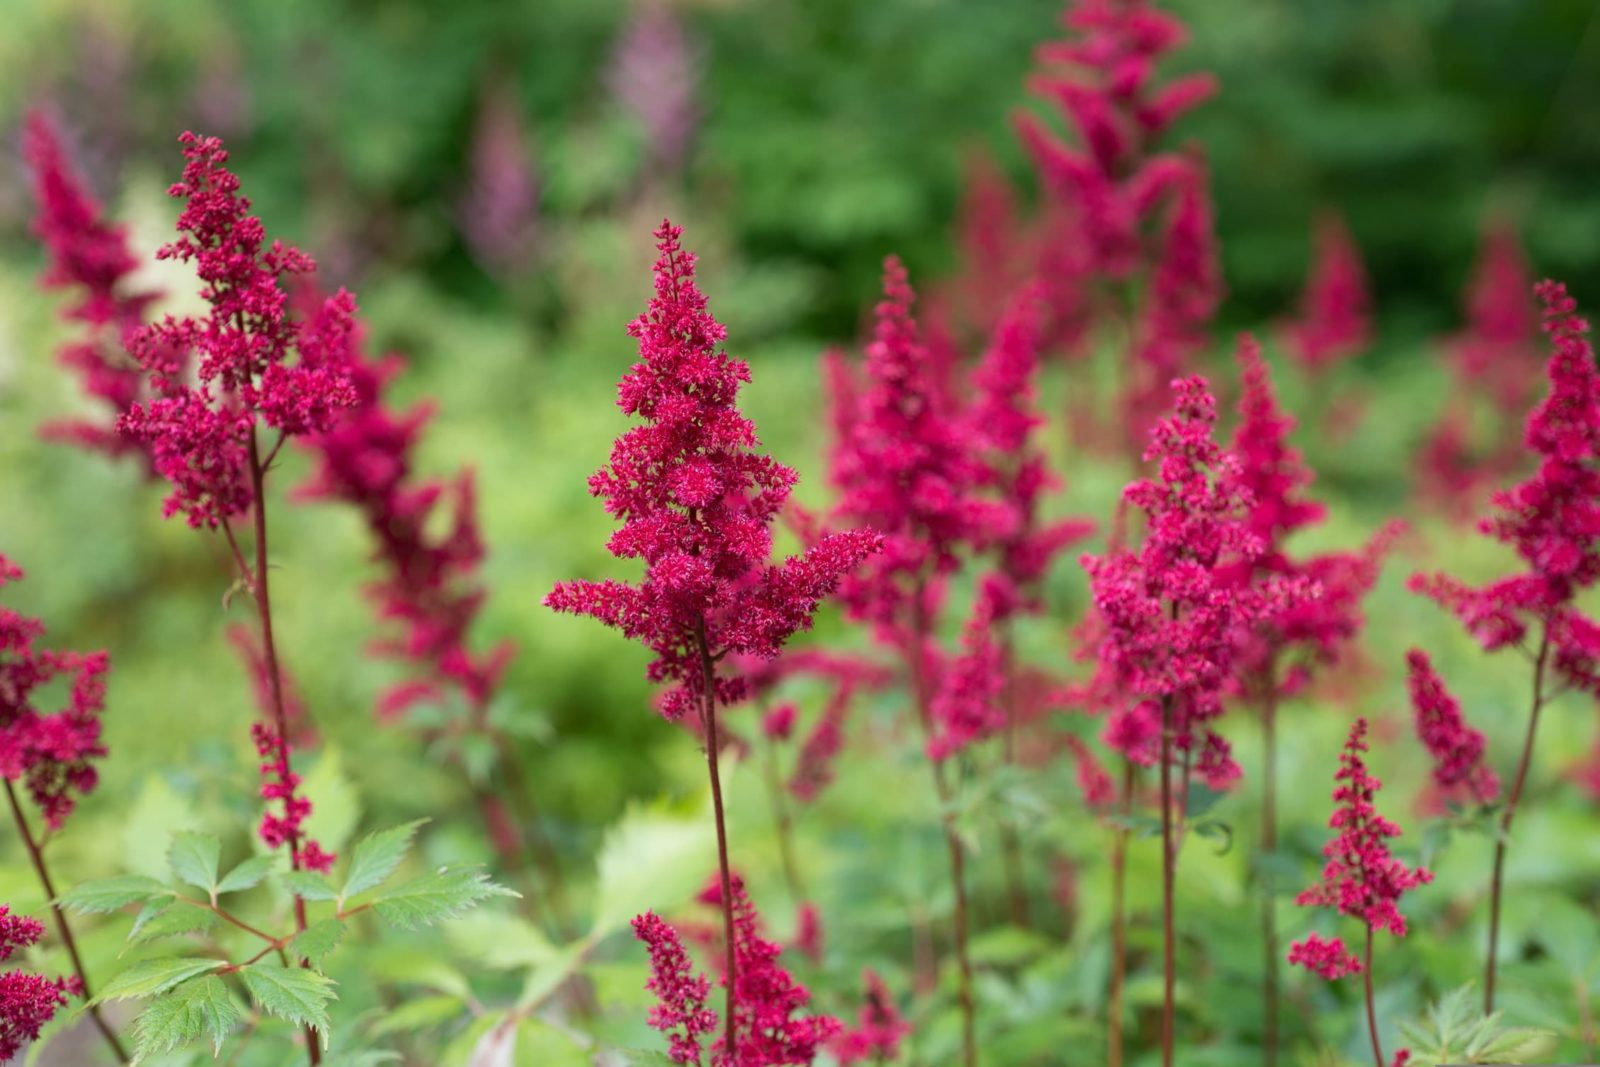 astilbe flowers bloom in a garden